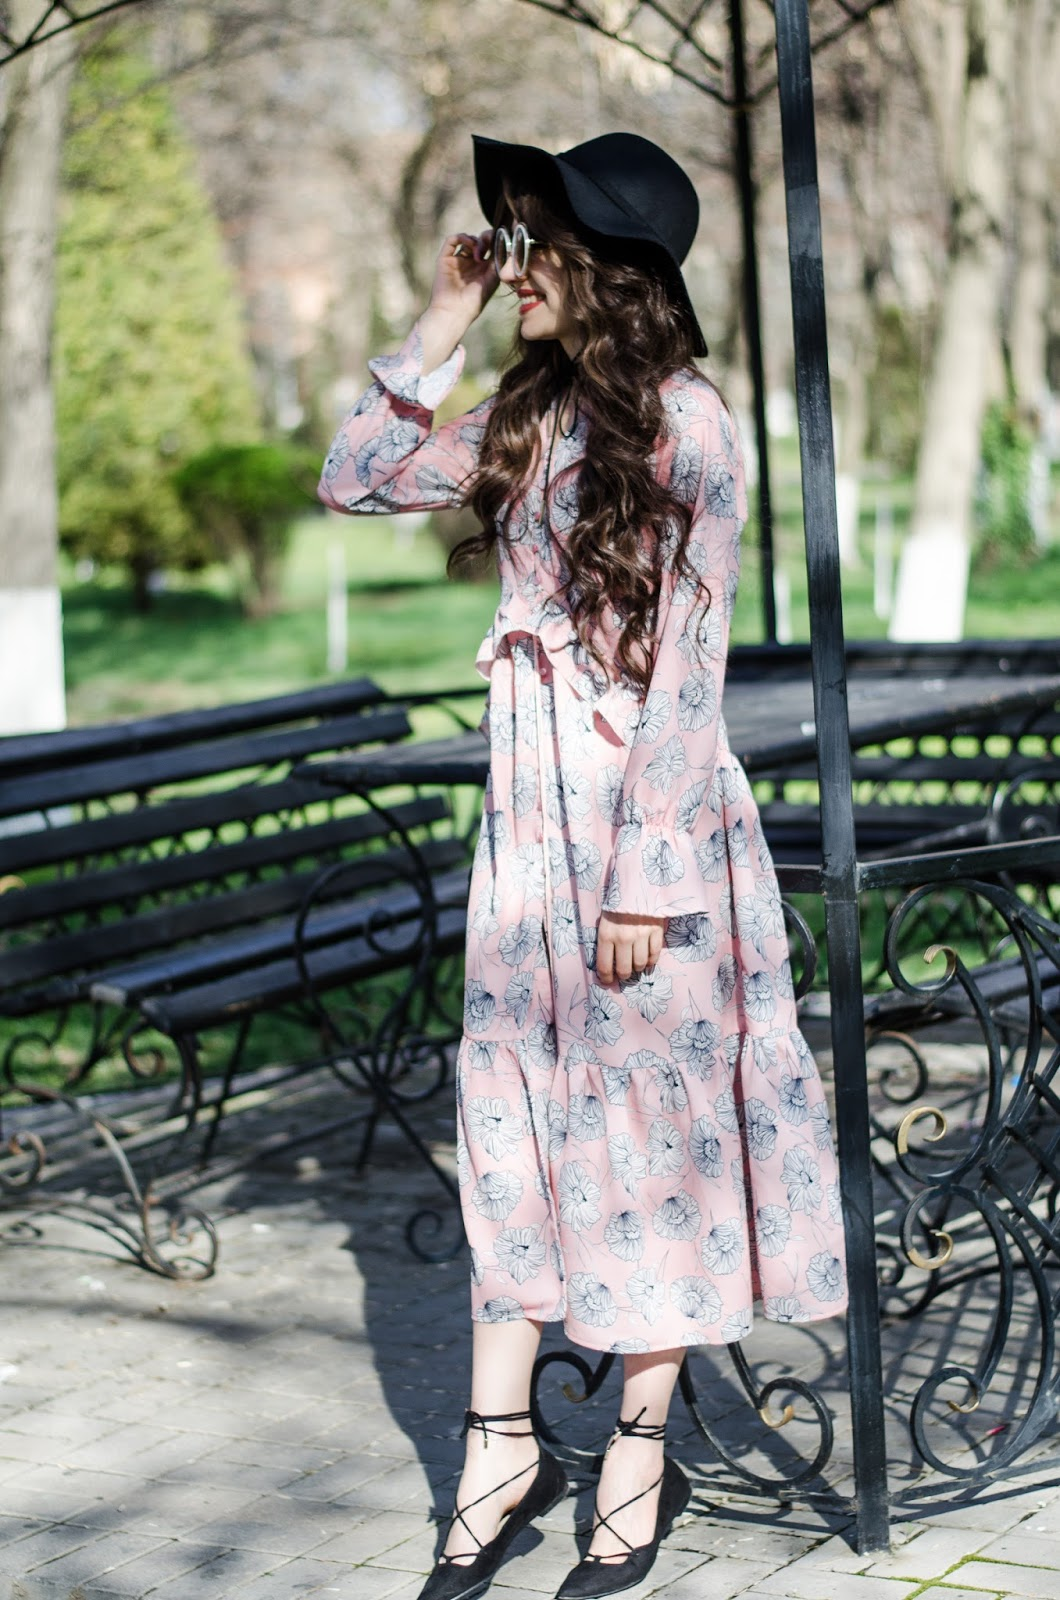 fashion blogger diyorasnotes diyora beta boho chic midi pink dress printed dress lace sandals hat oversized sunglasses